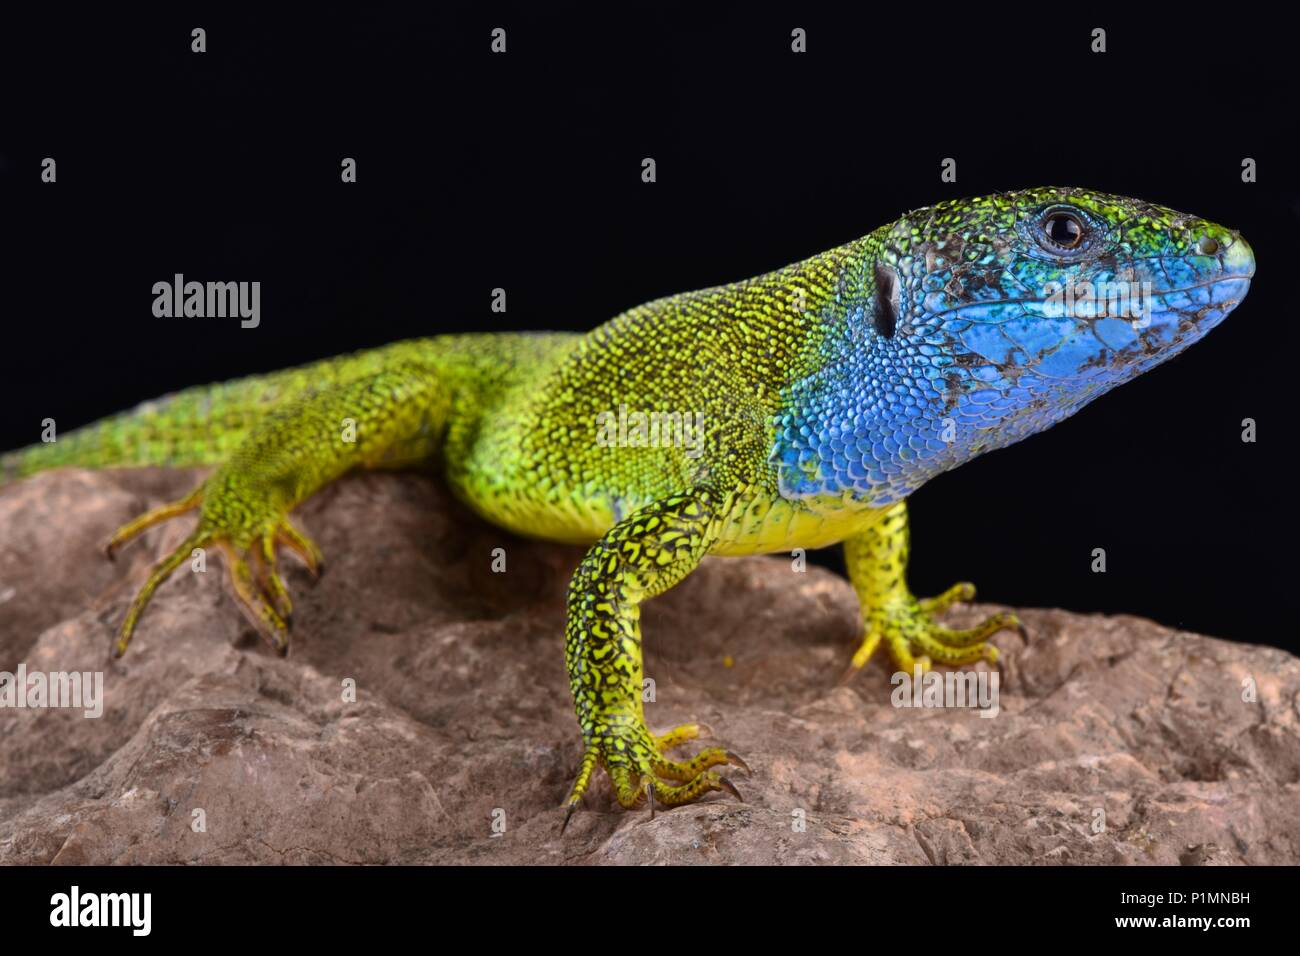 The European green lizard, Lacerta viridis, is a large (up to 40cm) lizard species. Males exhibit spectacular breeding colors. Stock Photo